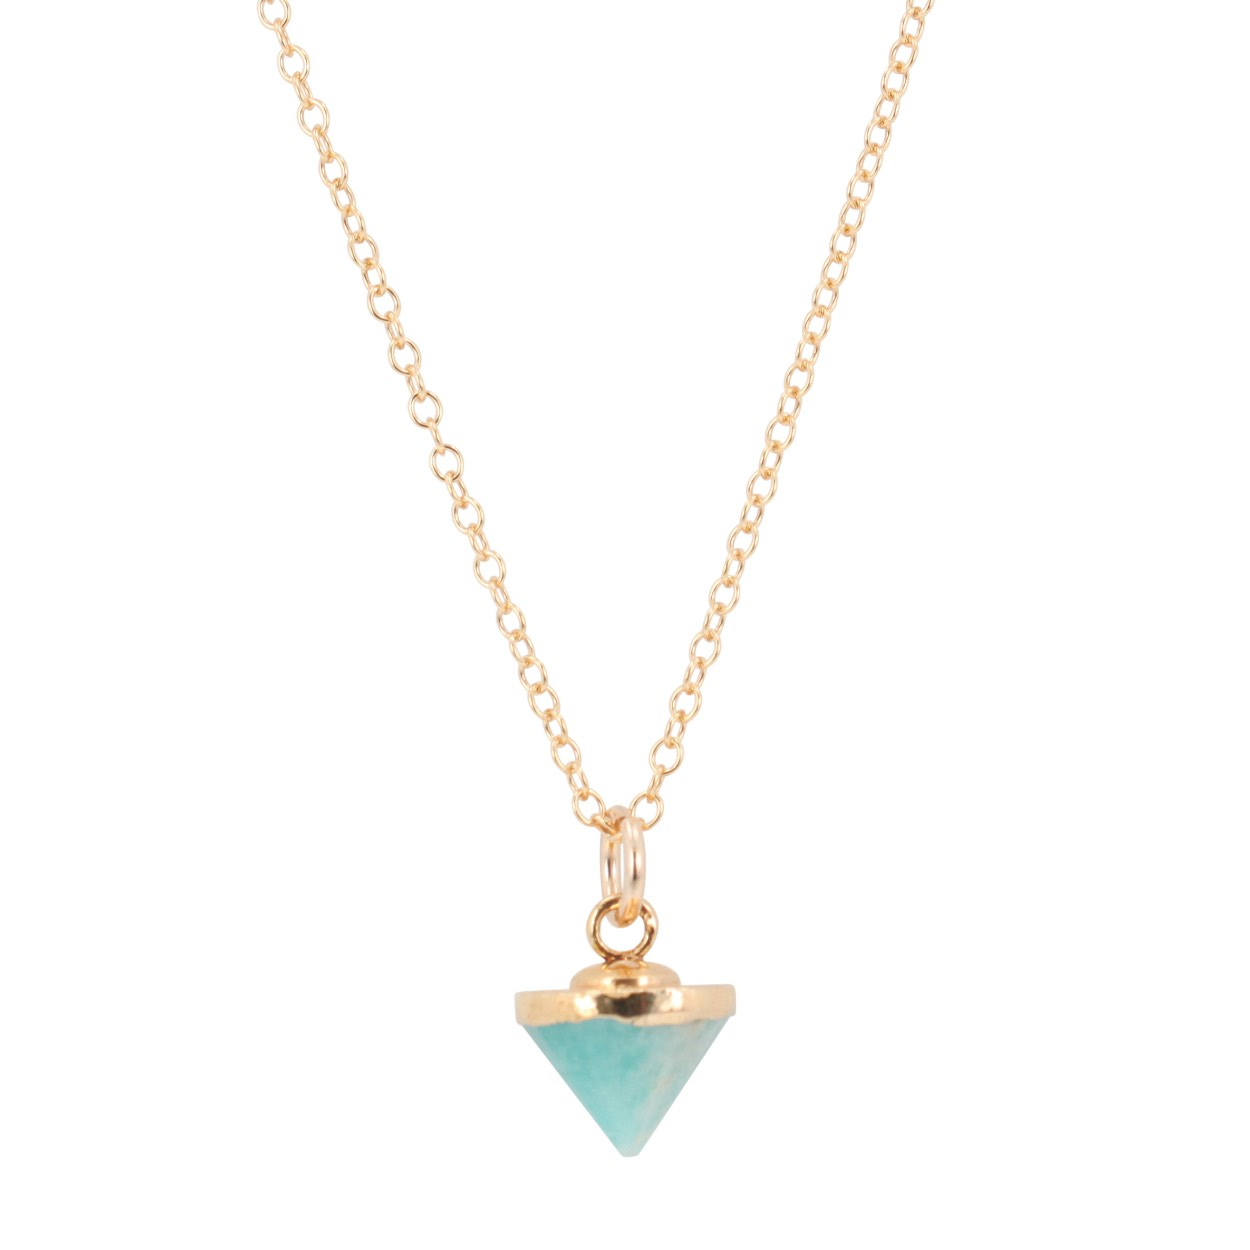 Small Gold Gem Spike Necklace on 24in. Chain, Stone Choice, #6451-yg (Amazonite) by